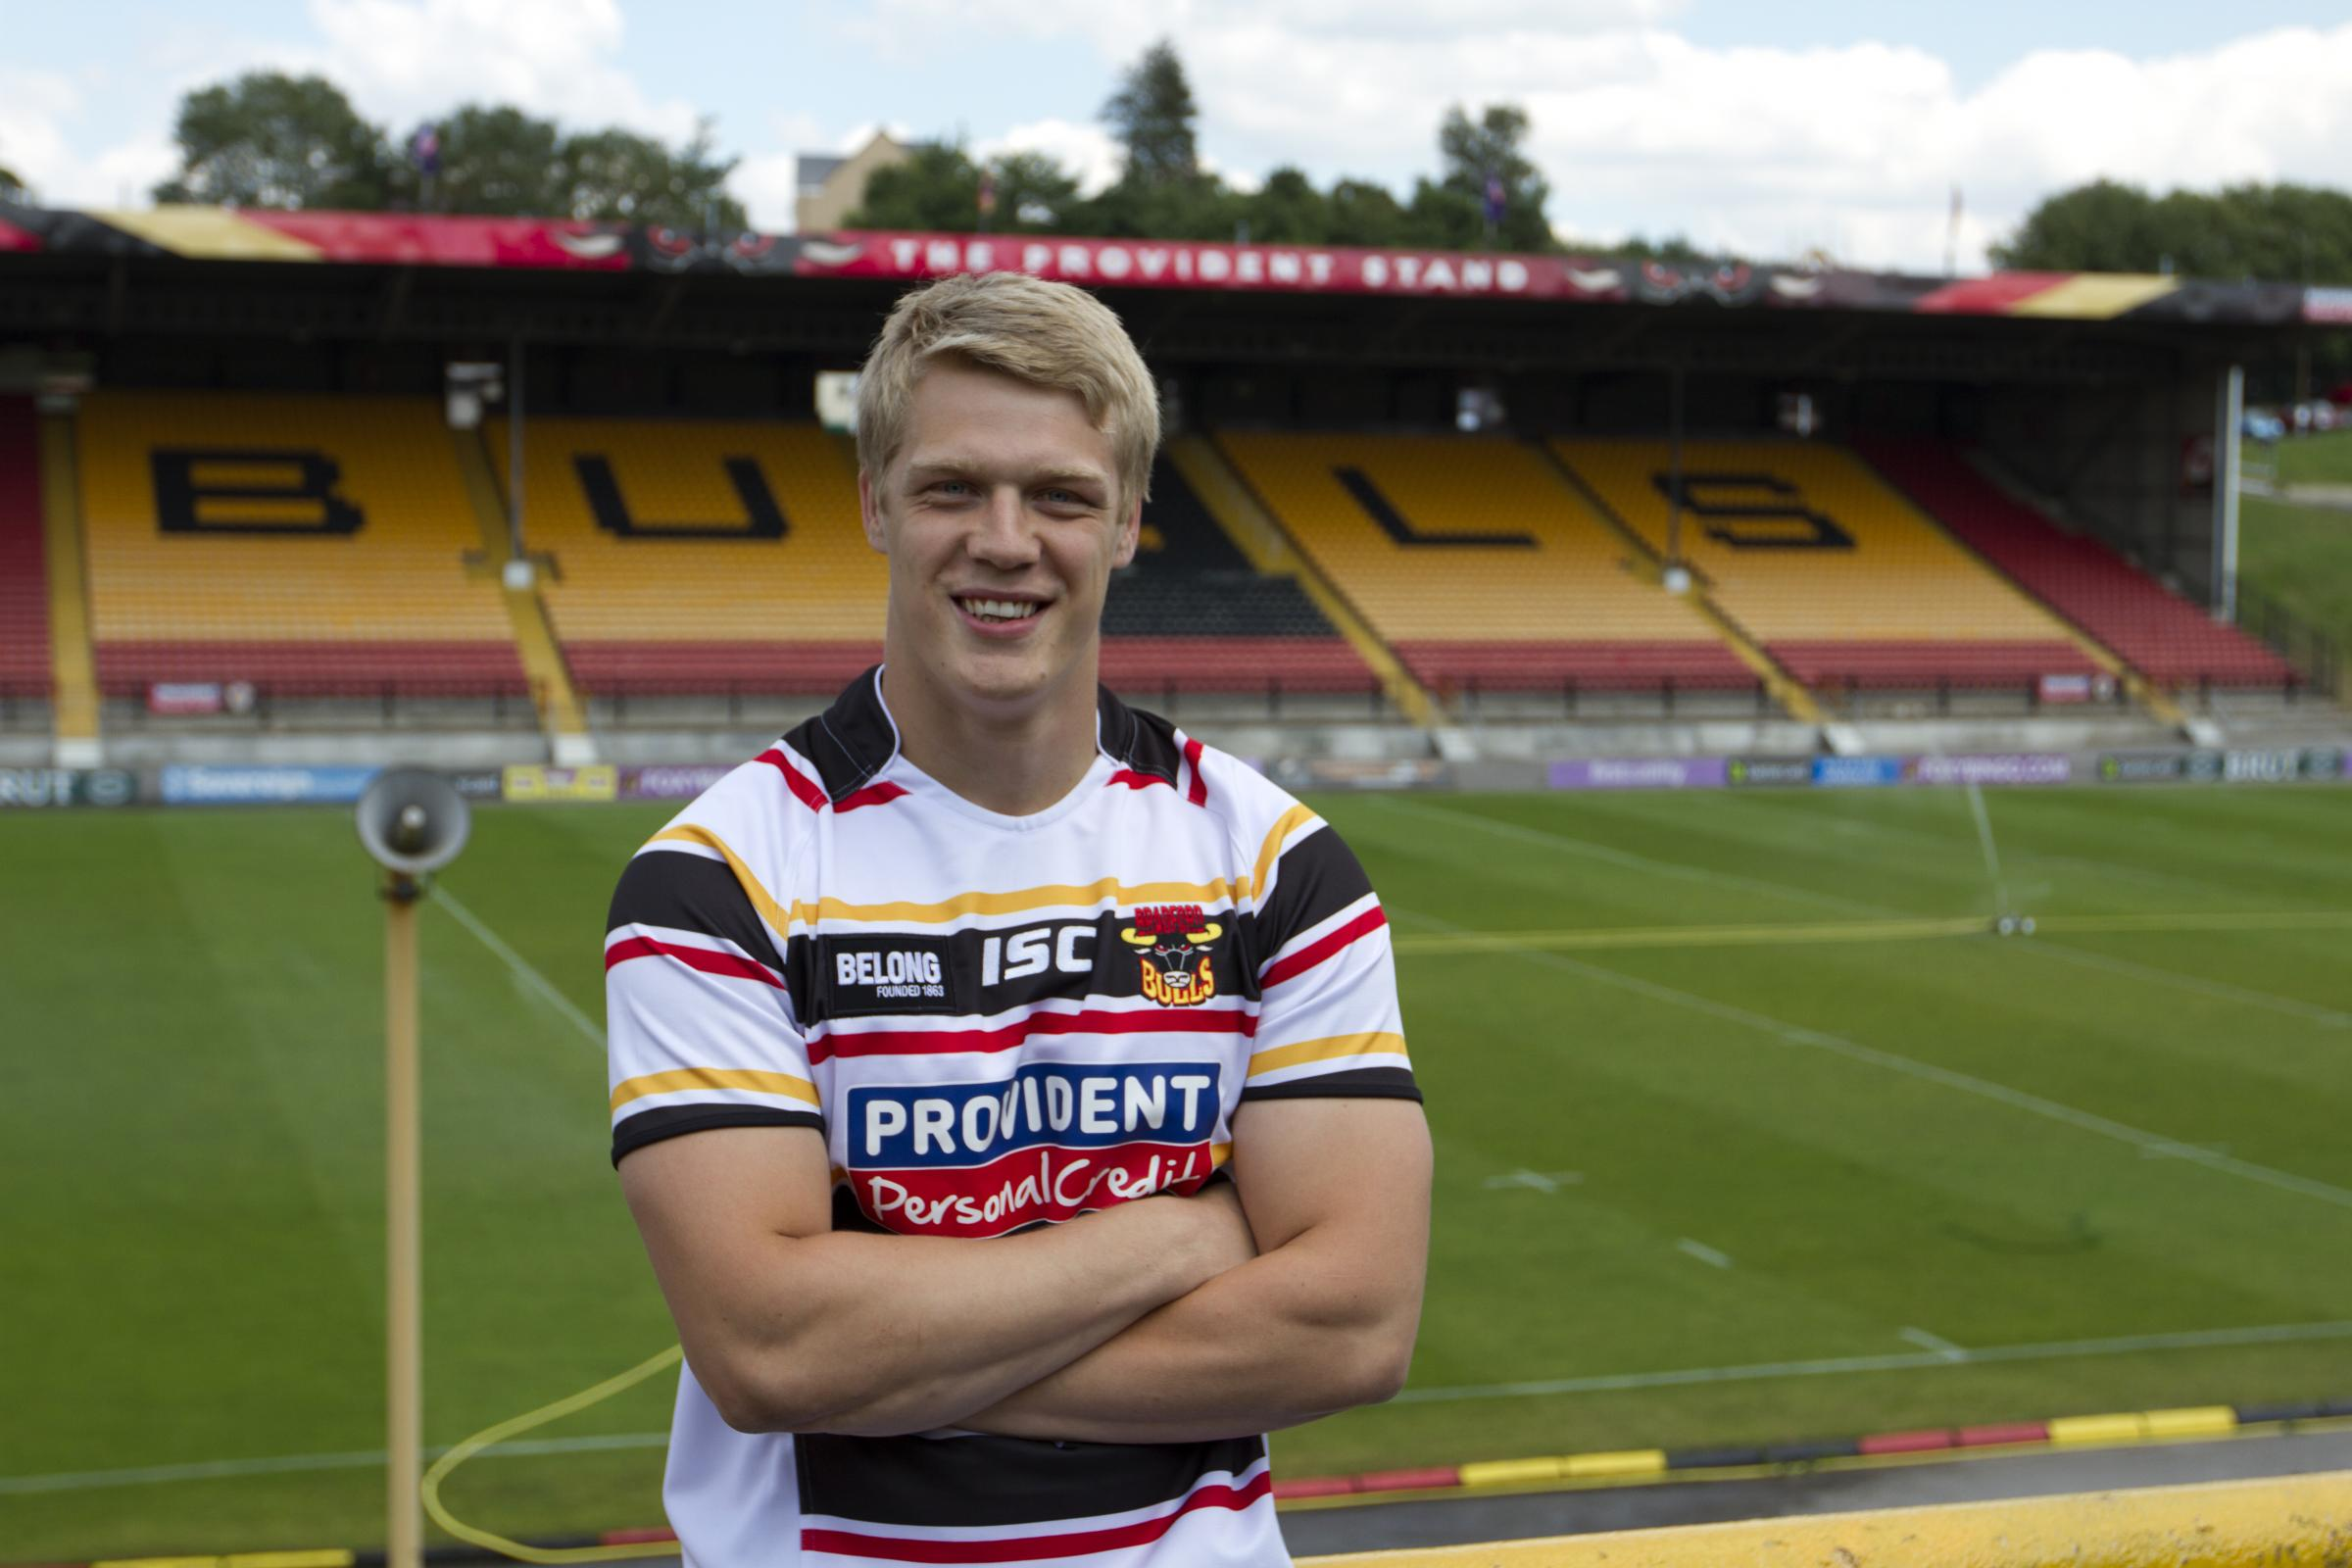 DAN Fleming says his time at Castleford has helped him immensely